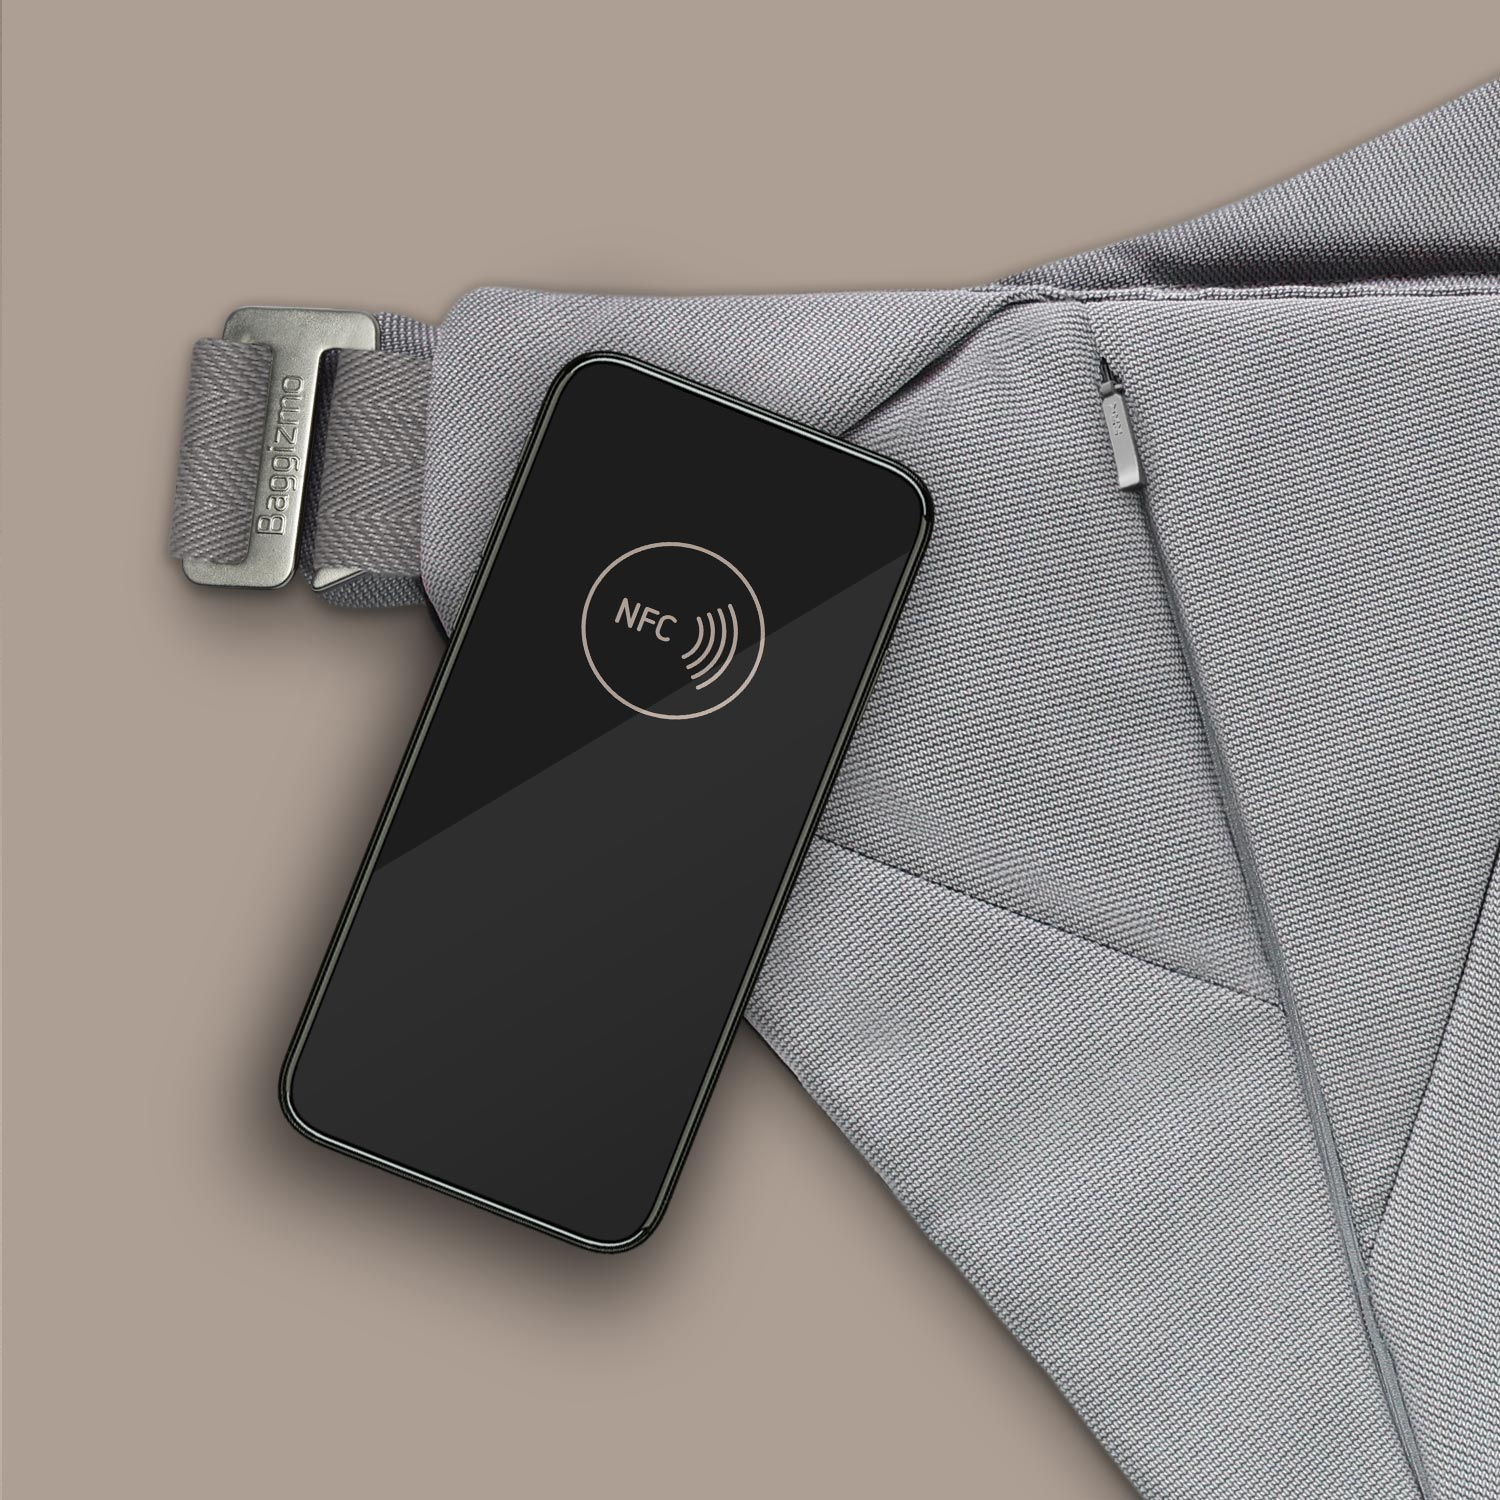 Smart phone scanning NFC tag in Baggizmo smart bag